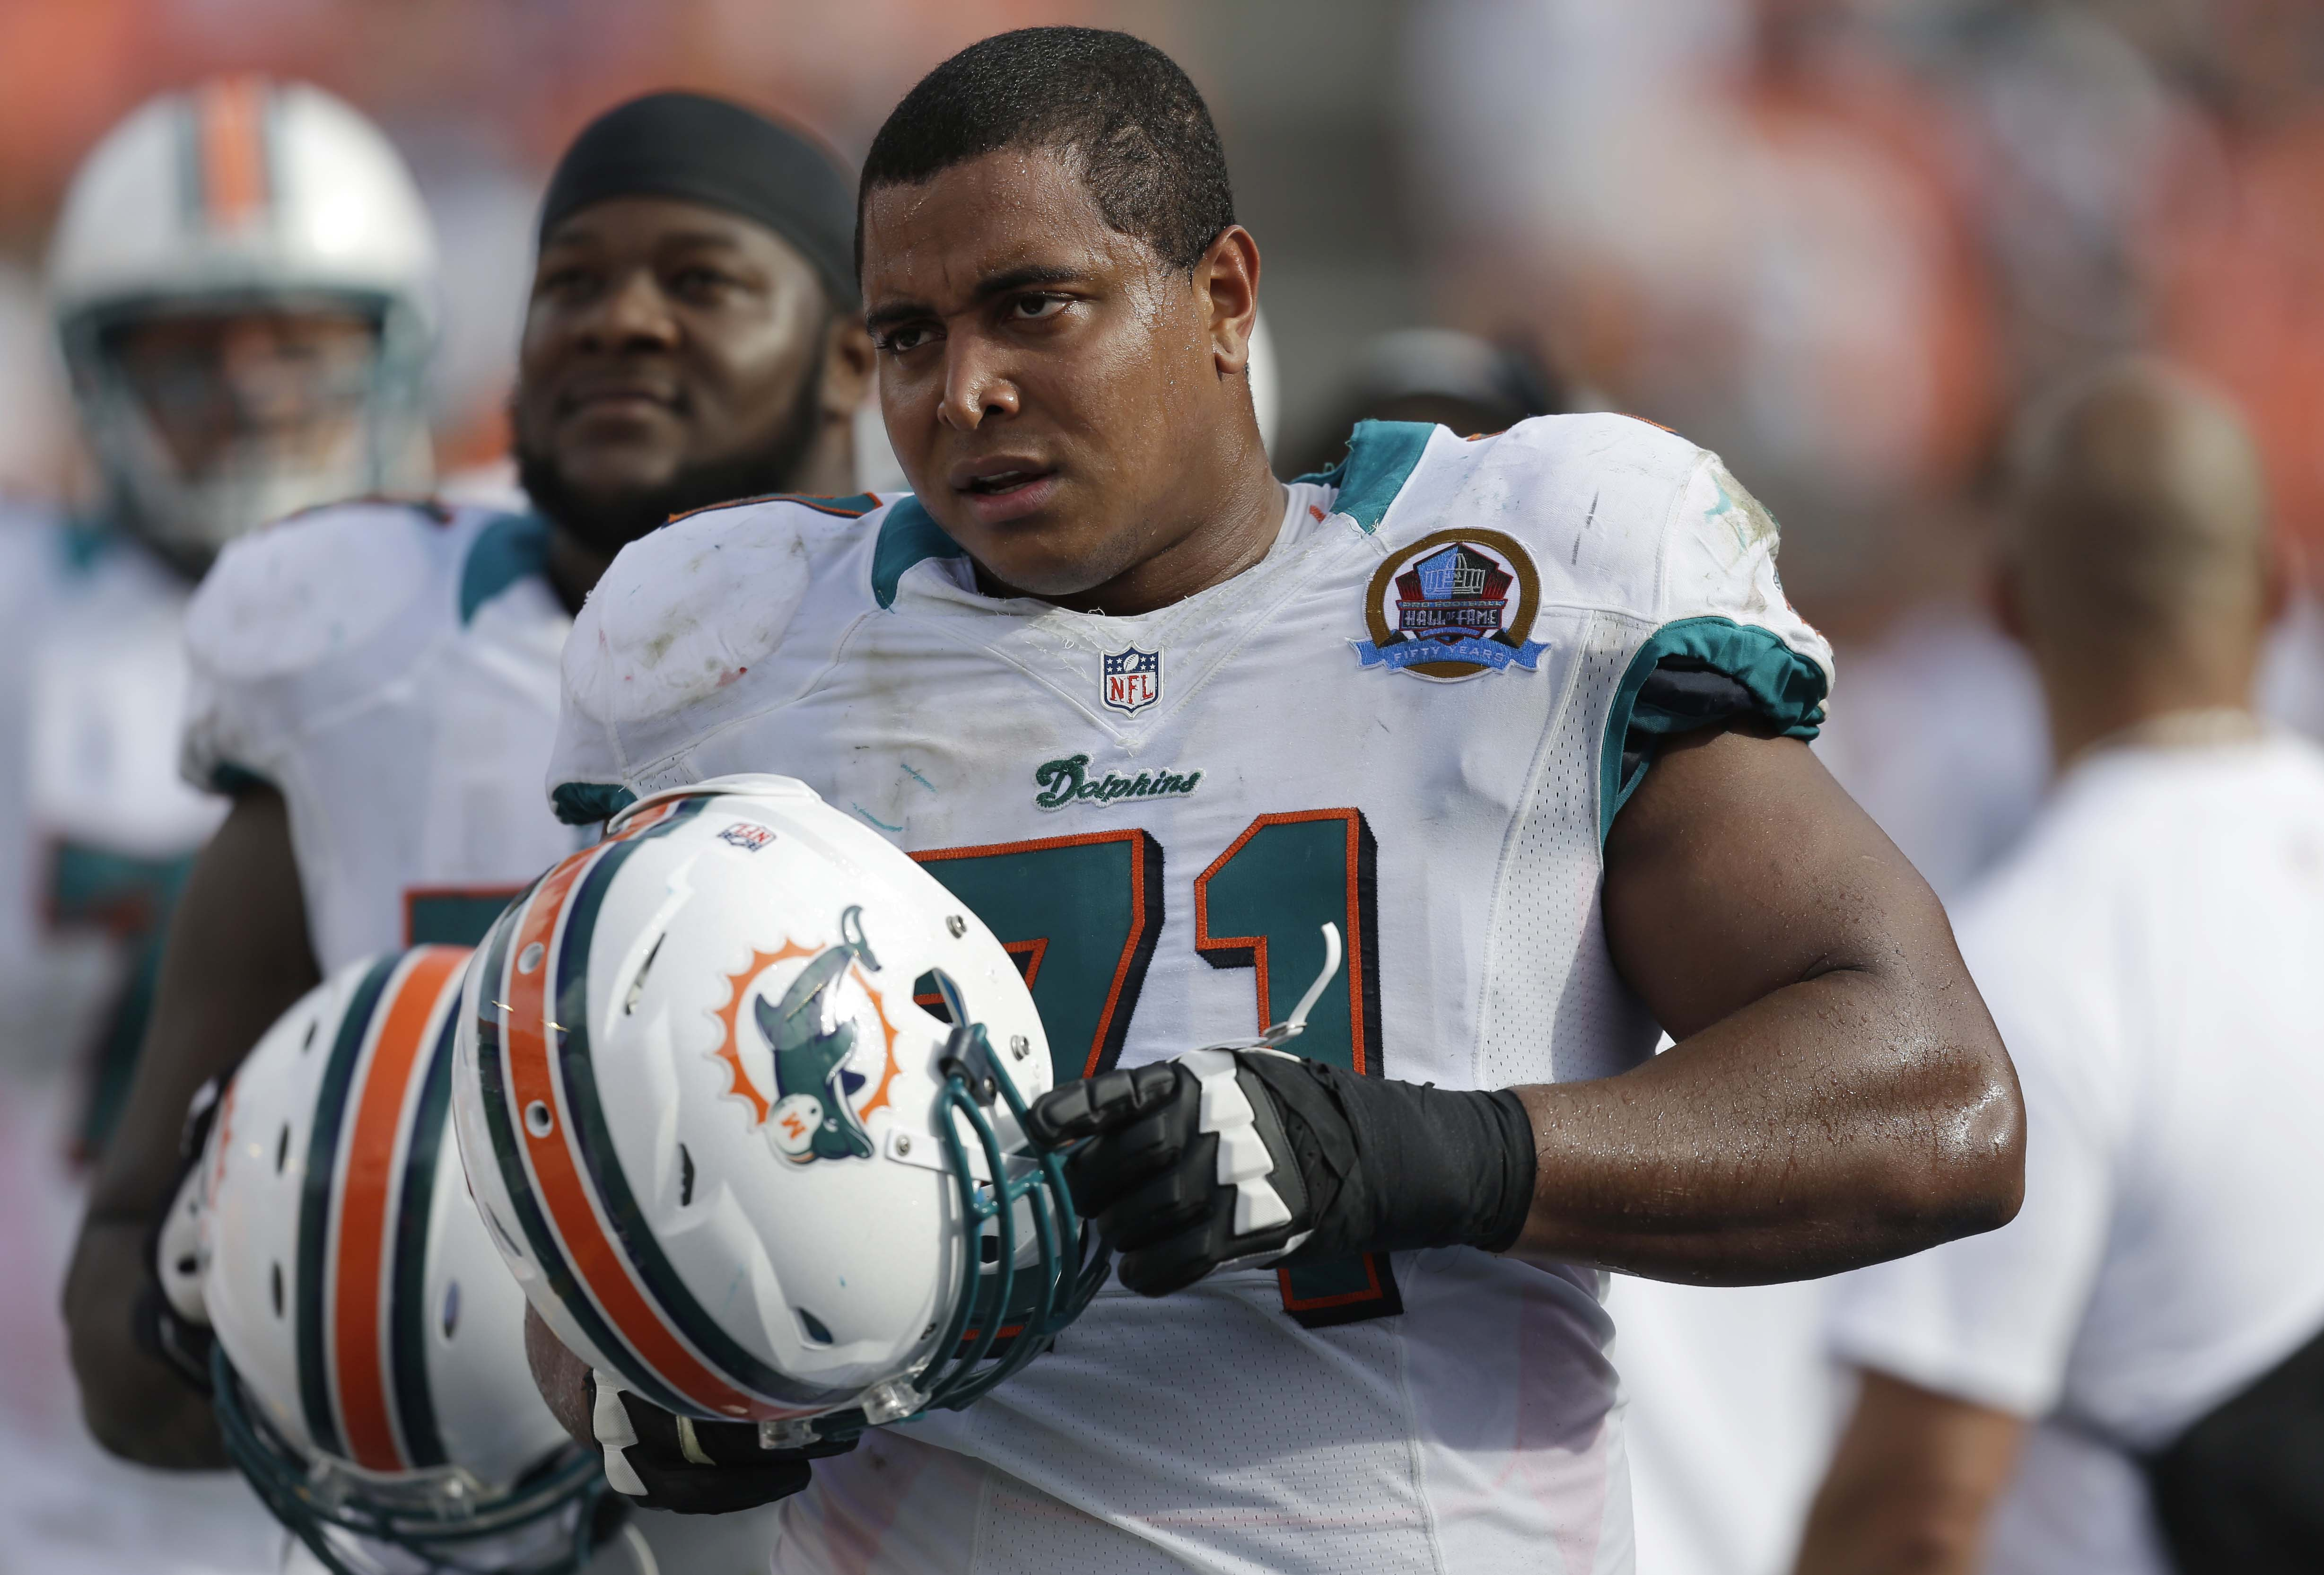 Incognito says Martin sent him threatening text